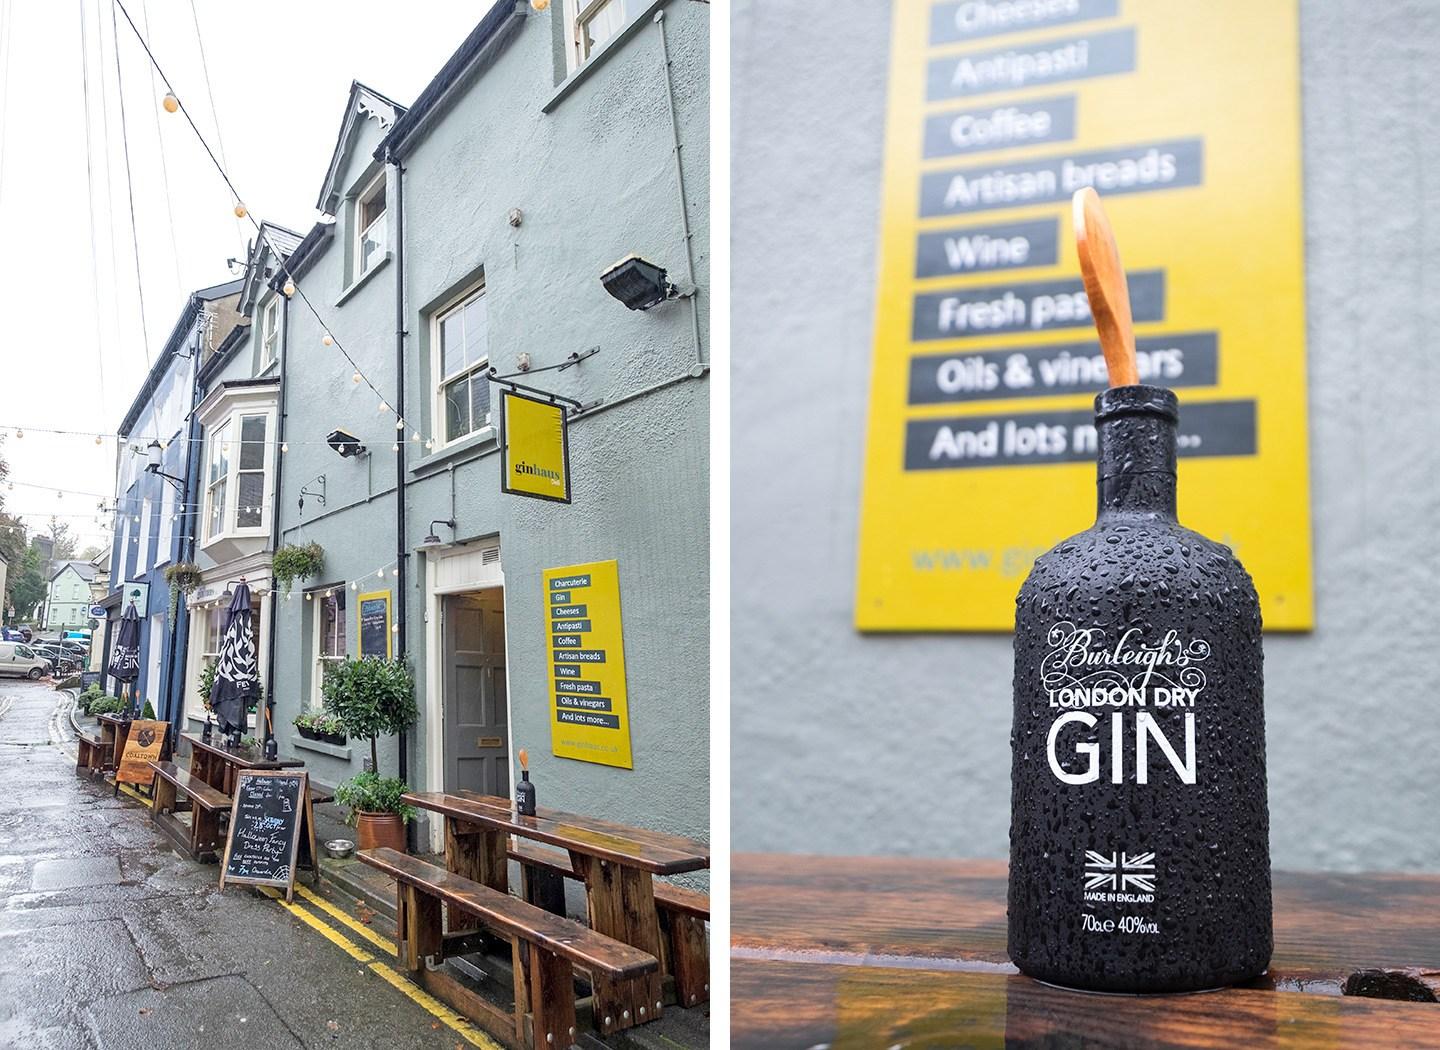 Ginhaus deli in Llandeilo, South Wales